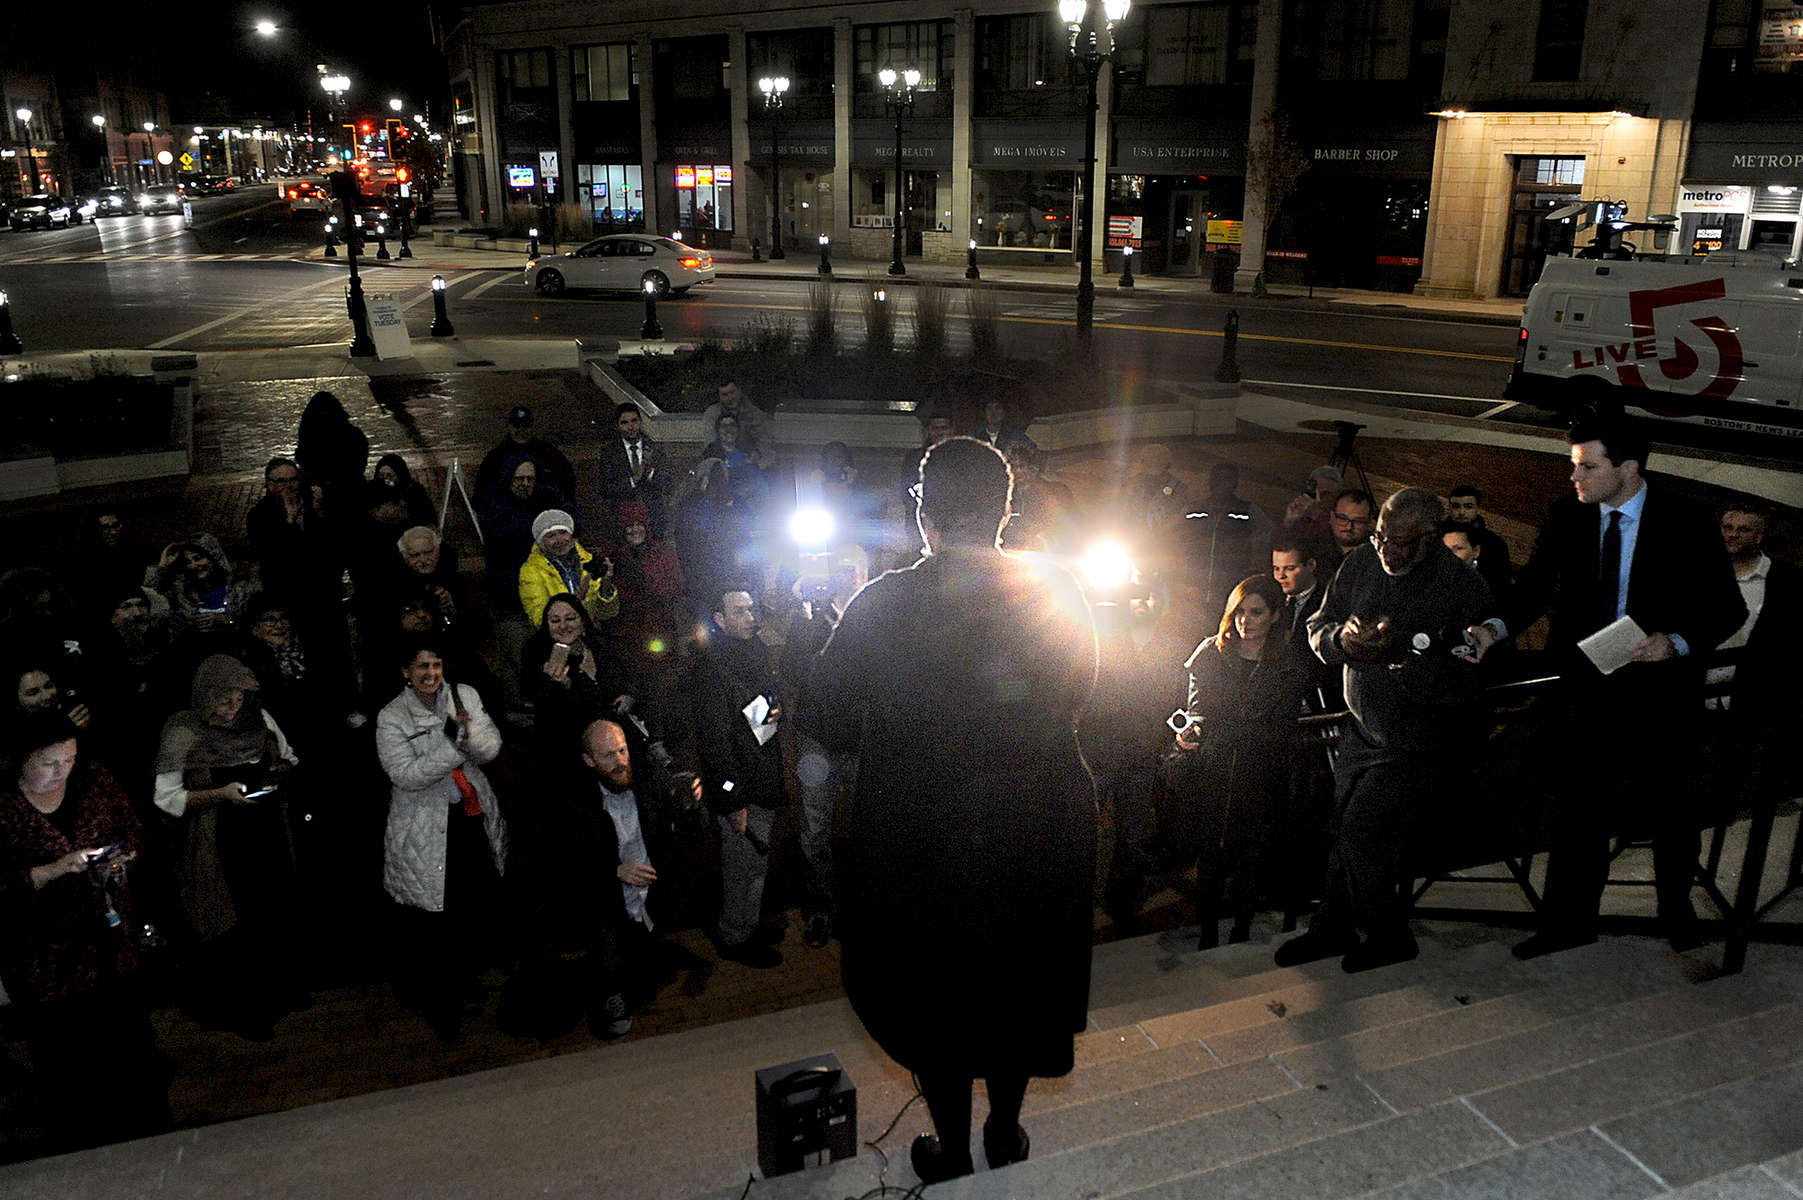 11/7/17  FRAMINGHAM-- Newly elected Framingham Mayor Yvonne Spicer outside the Memorial Building before speaking to supporters and the media Tuesday night. [Daily News and Wicked Local Staff Photo/Art Illman]